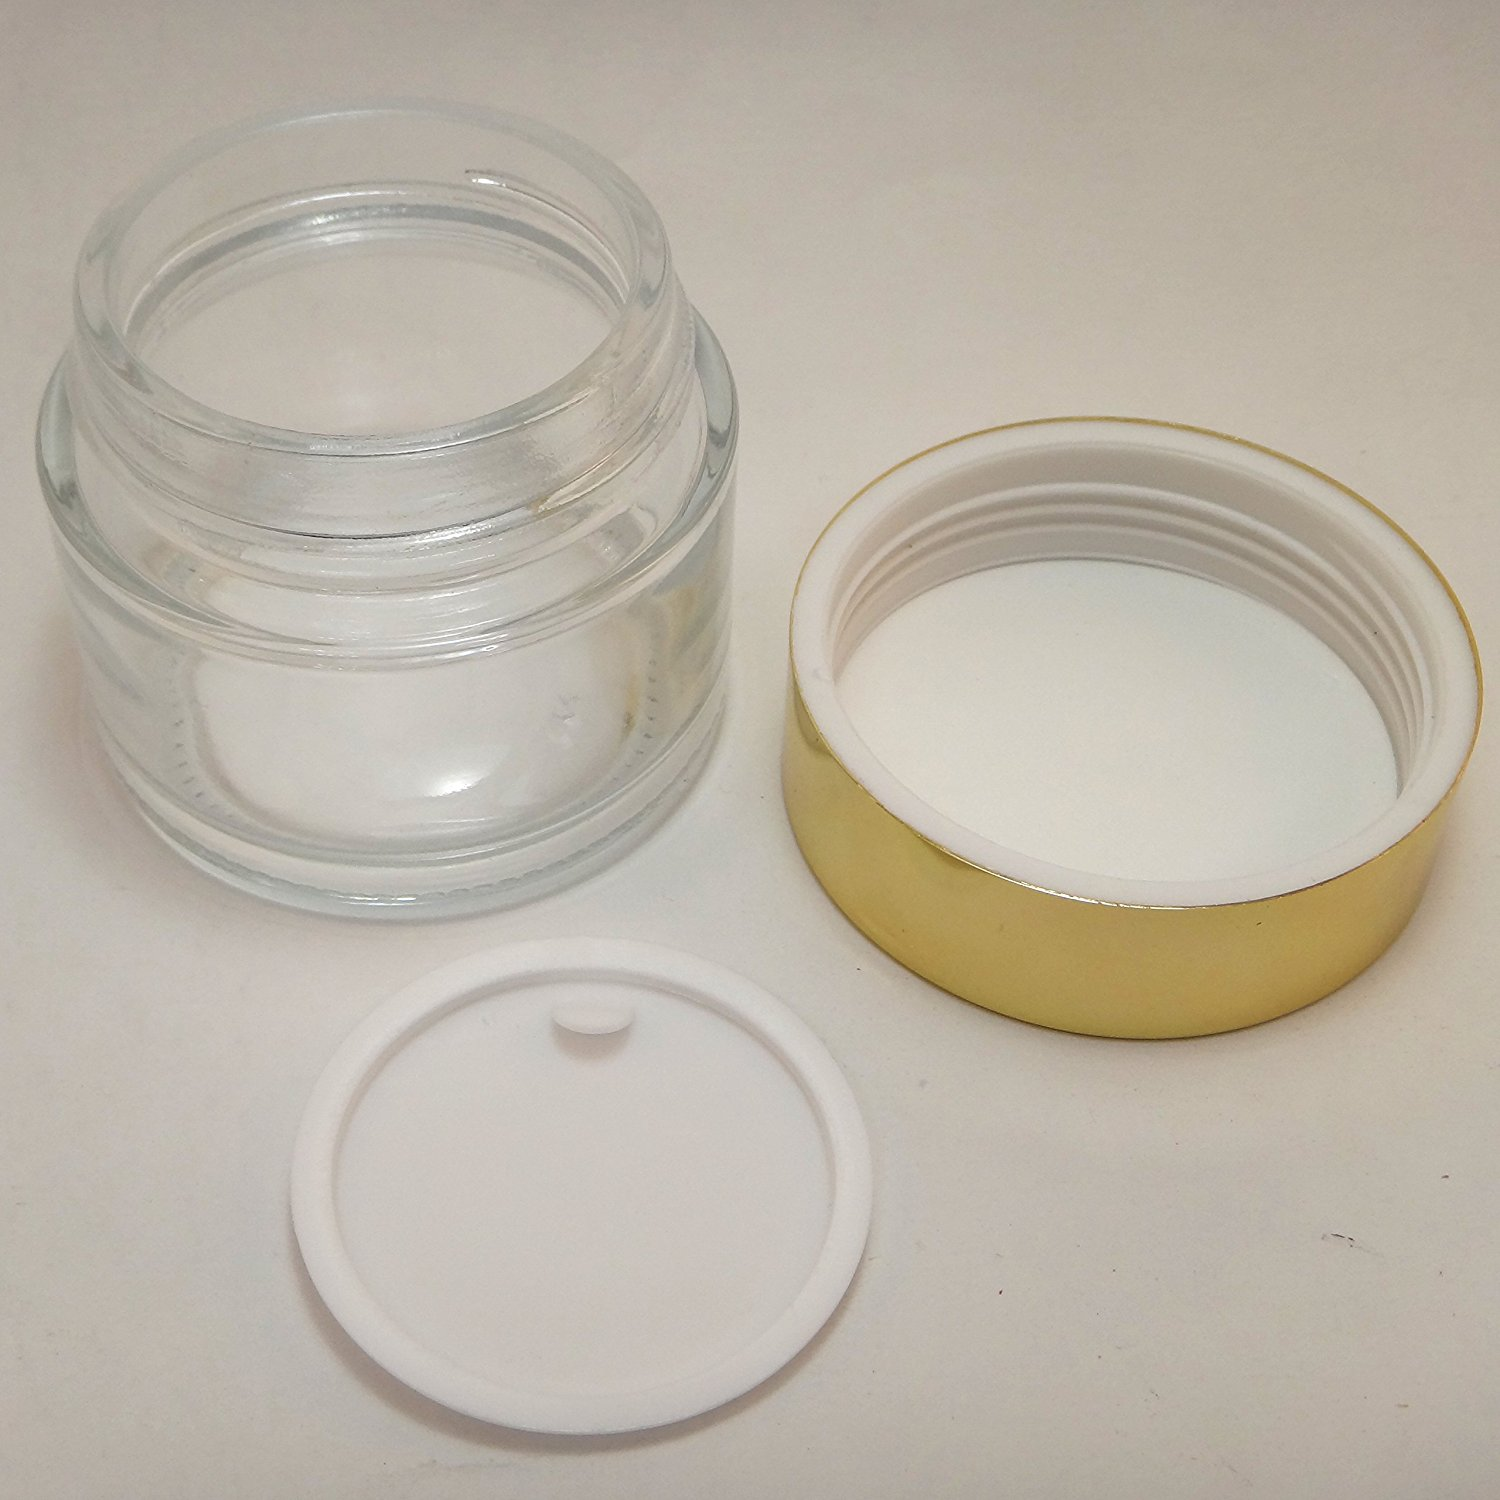 d953a223b025 Cheap 100ml Amber Plastic Jar, find 100ml Amber Plastic Jar deals on ...